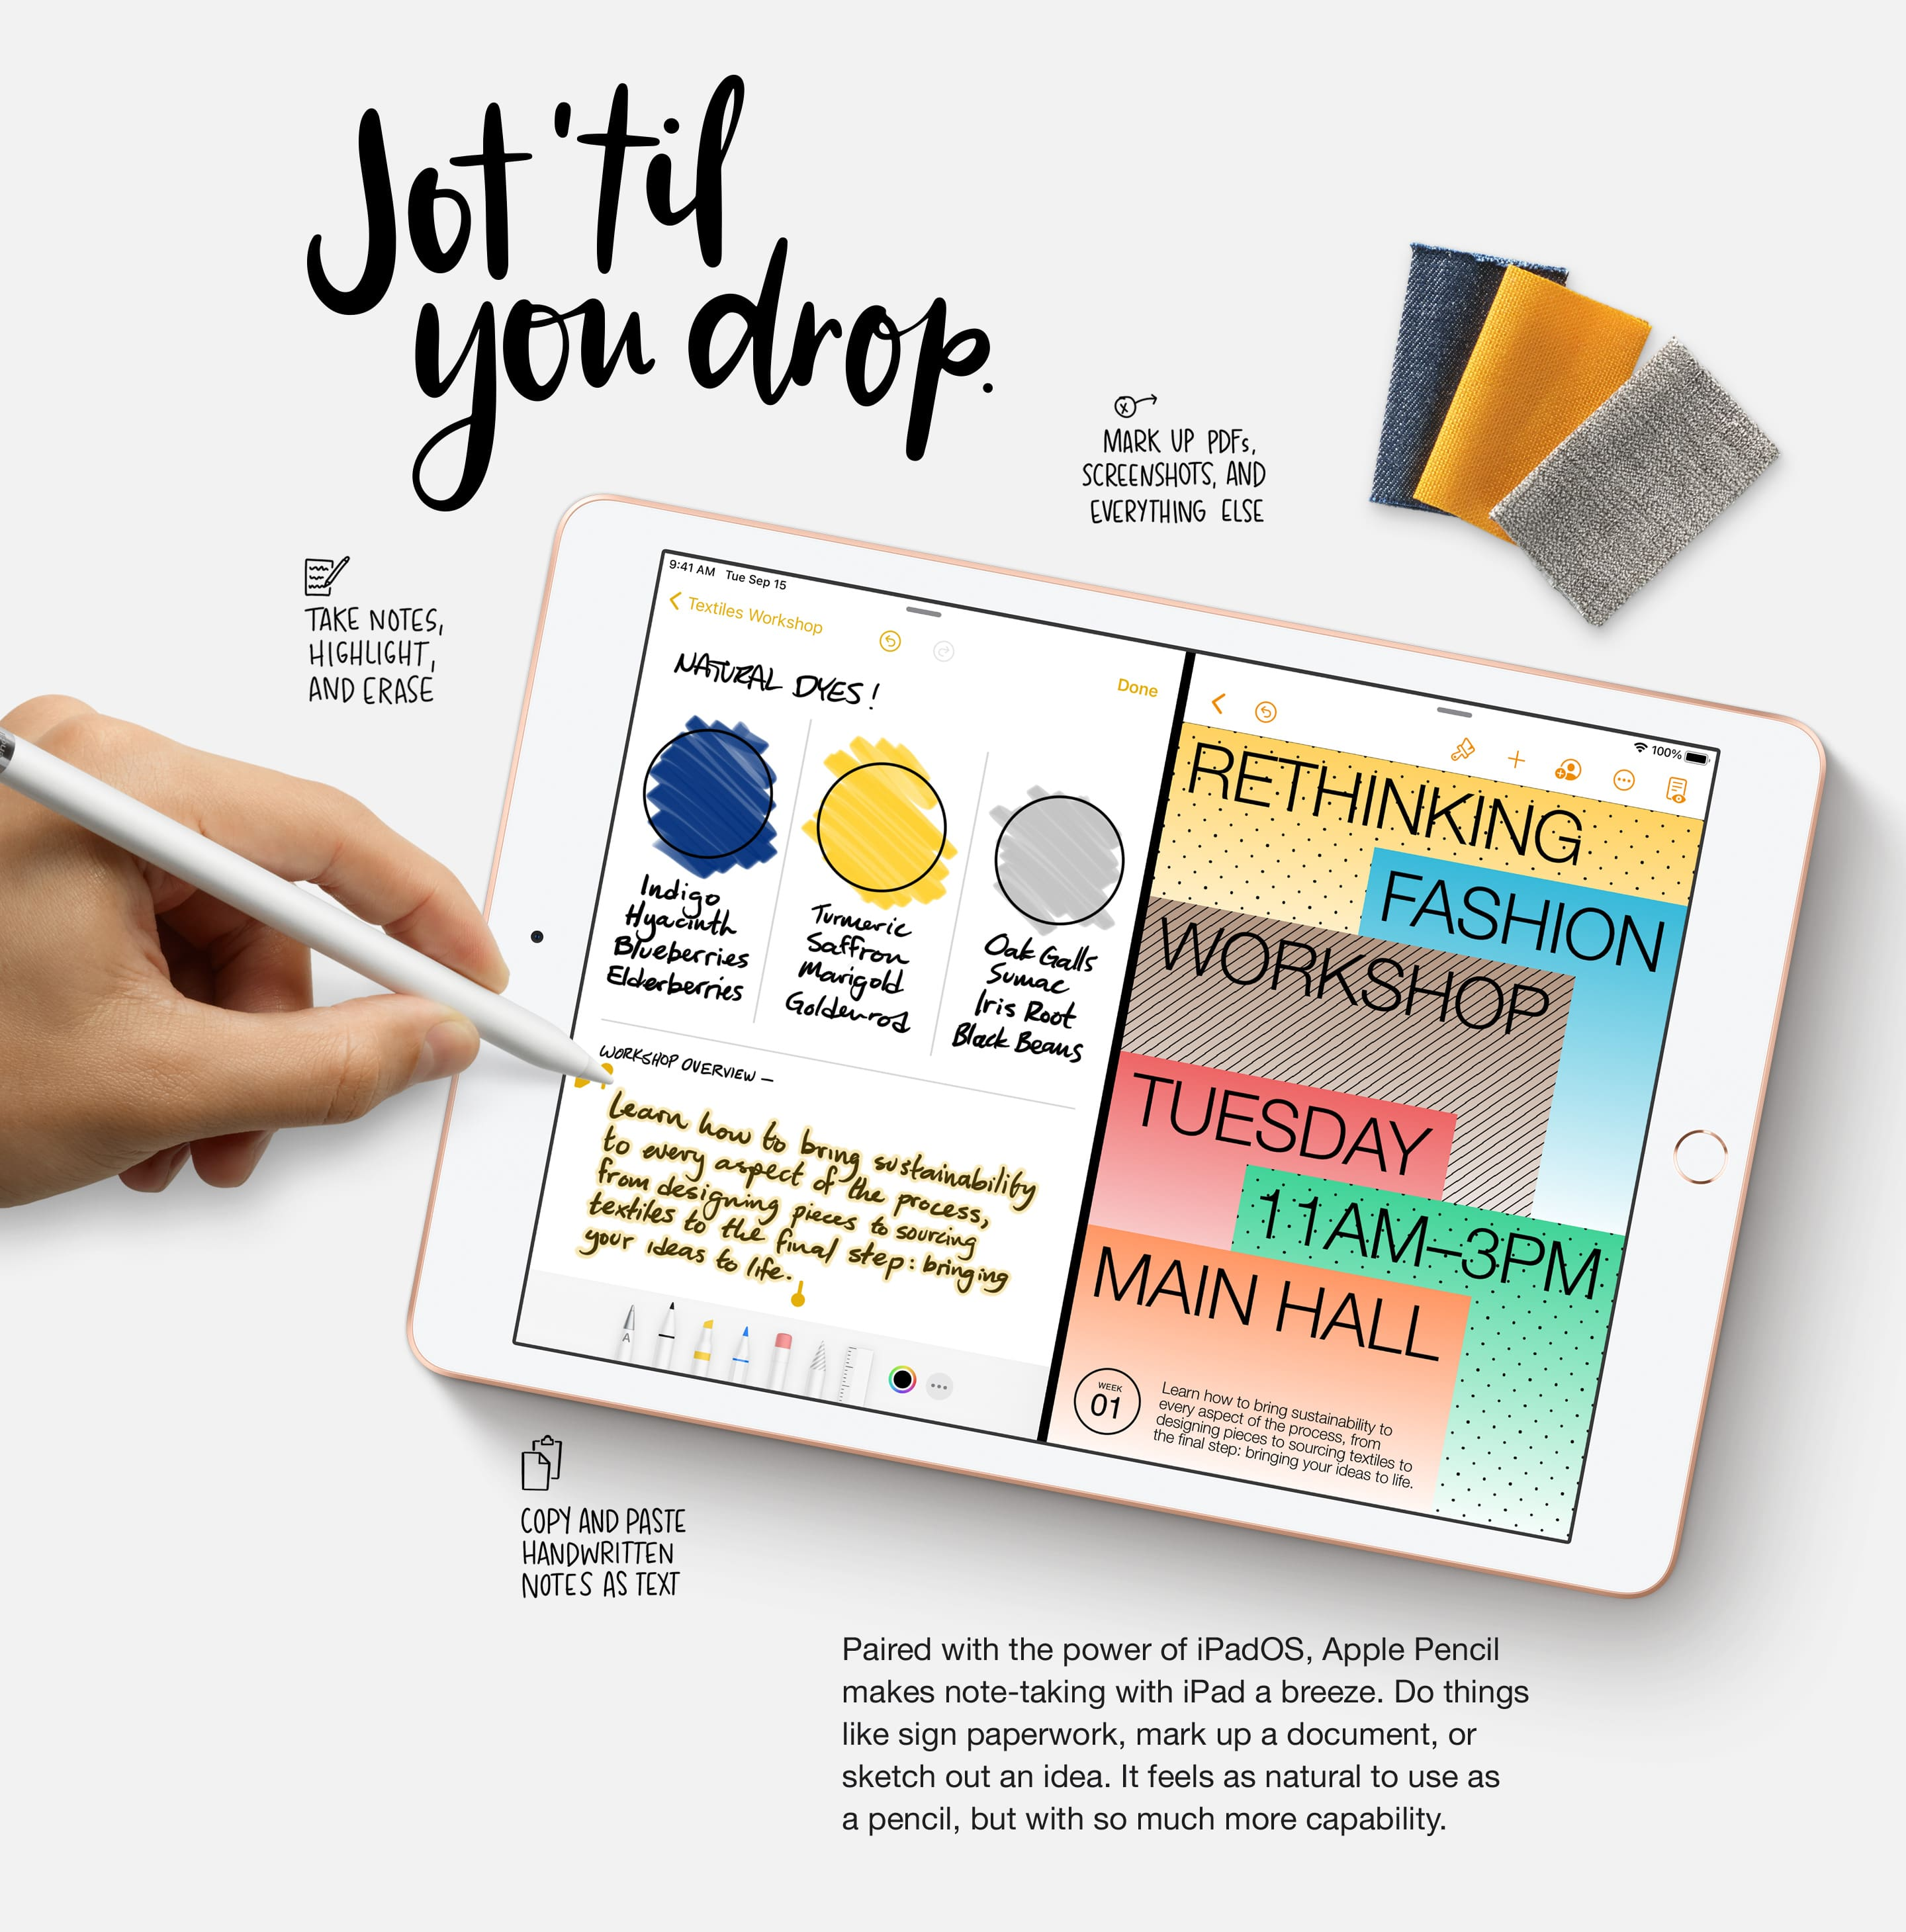 Jot til you drop. Paired with the power of iPadOS, Apple Pencil makes note-taking with iPad a breeze. Do things like sign paperwork, mark up a document, or sketch out an idea. It feels as natural to use as a pencil, but with so much more capability.